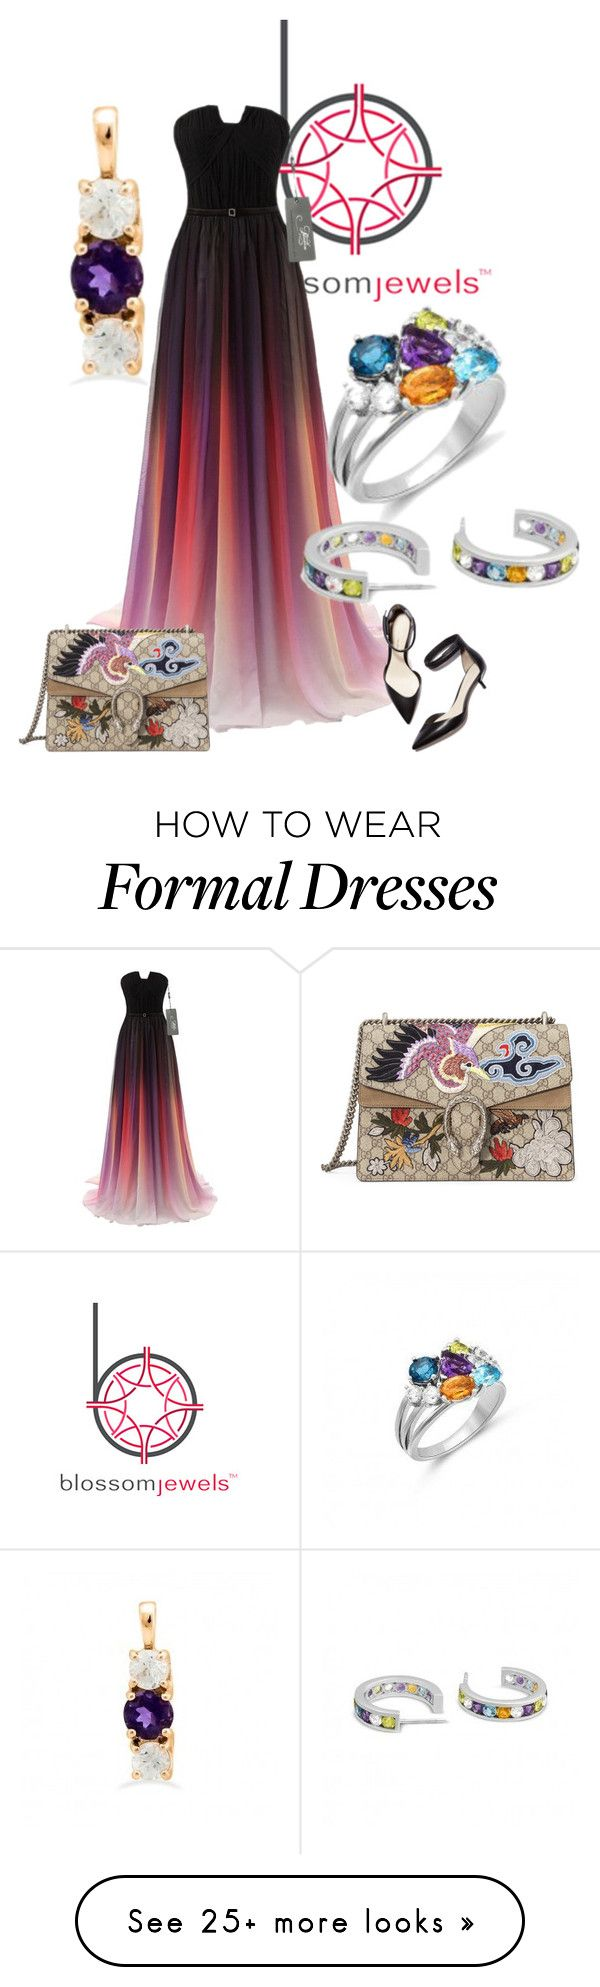 """""""Blossomjewels Sponsored Contest"""" by balloon565 on Polyvore featuring 3.1 Phillip Lim and Gucci"""